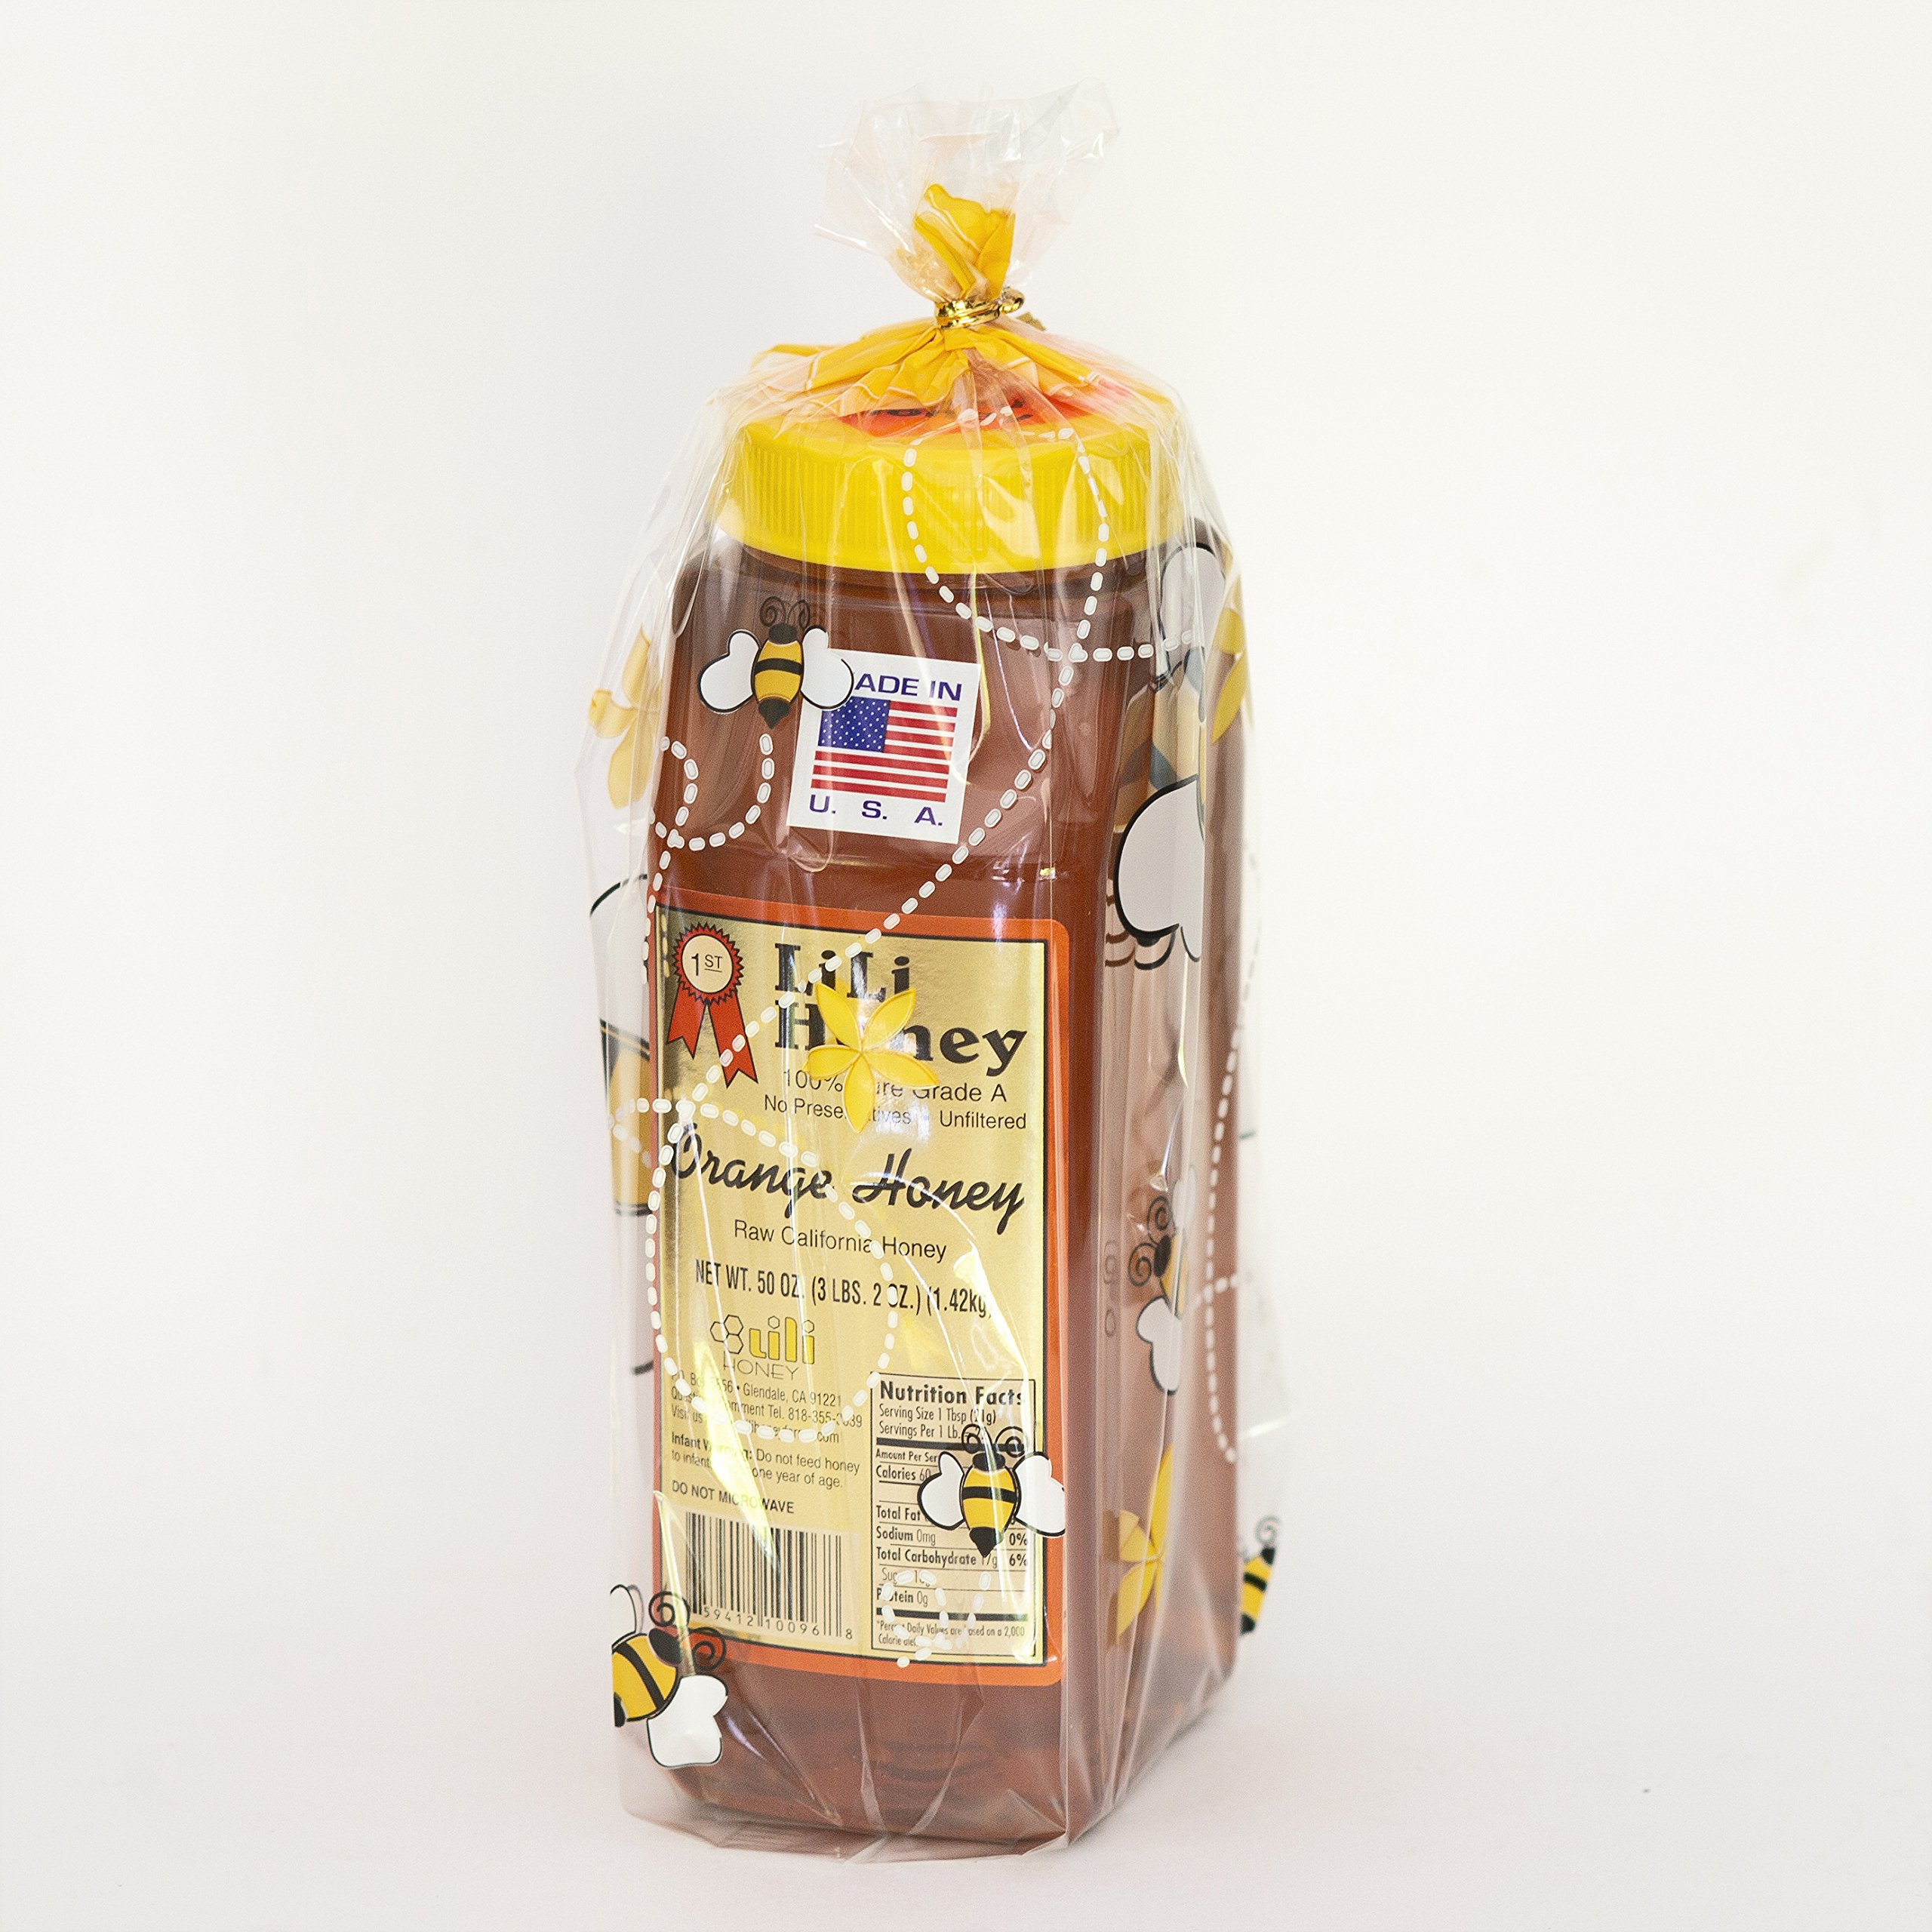 California Raw Orange Honey 50 Ounces/3 1/8 Lb/1.42kg Pure 100% Natural Grade A Gift Wrapped by Lili Farms (Image #2)